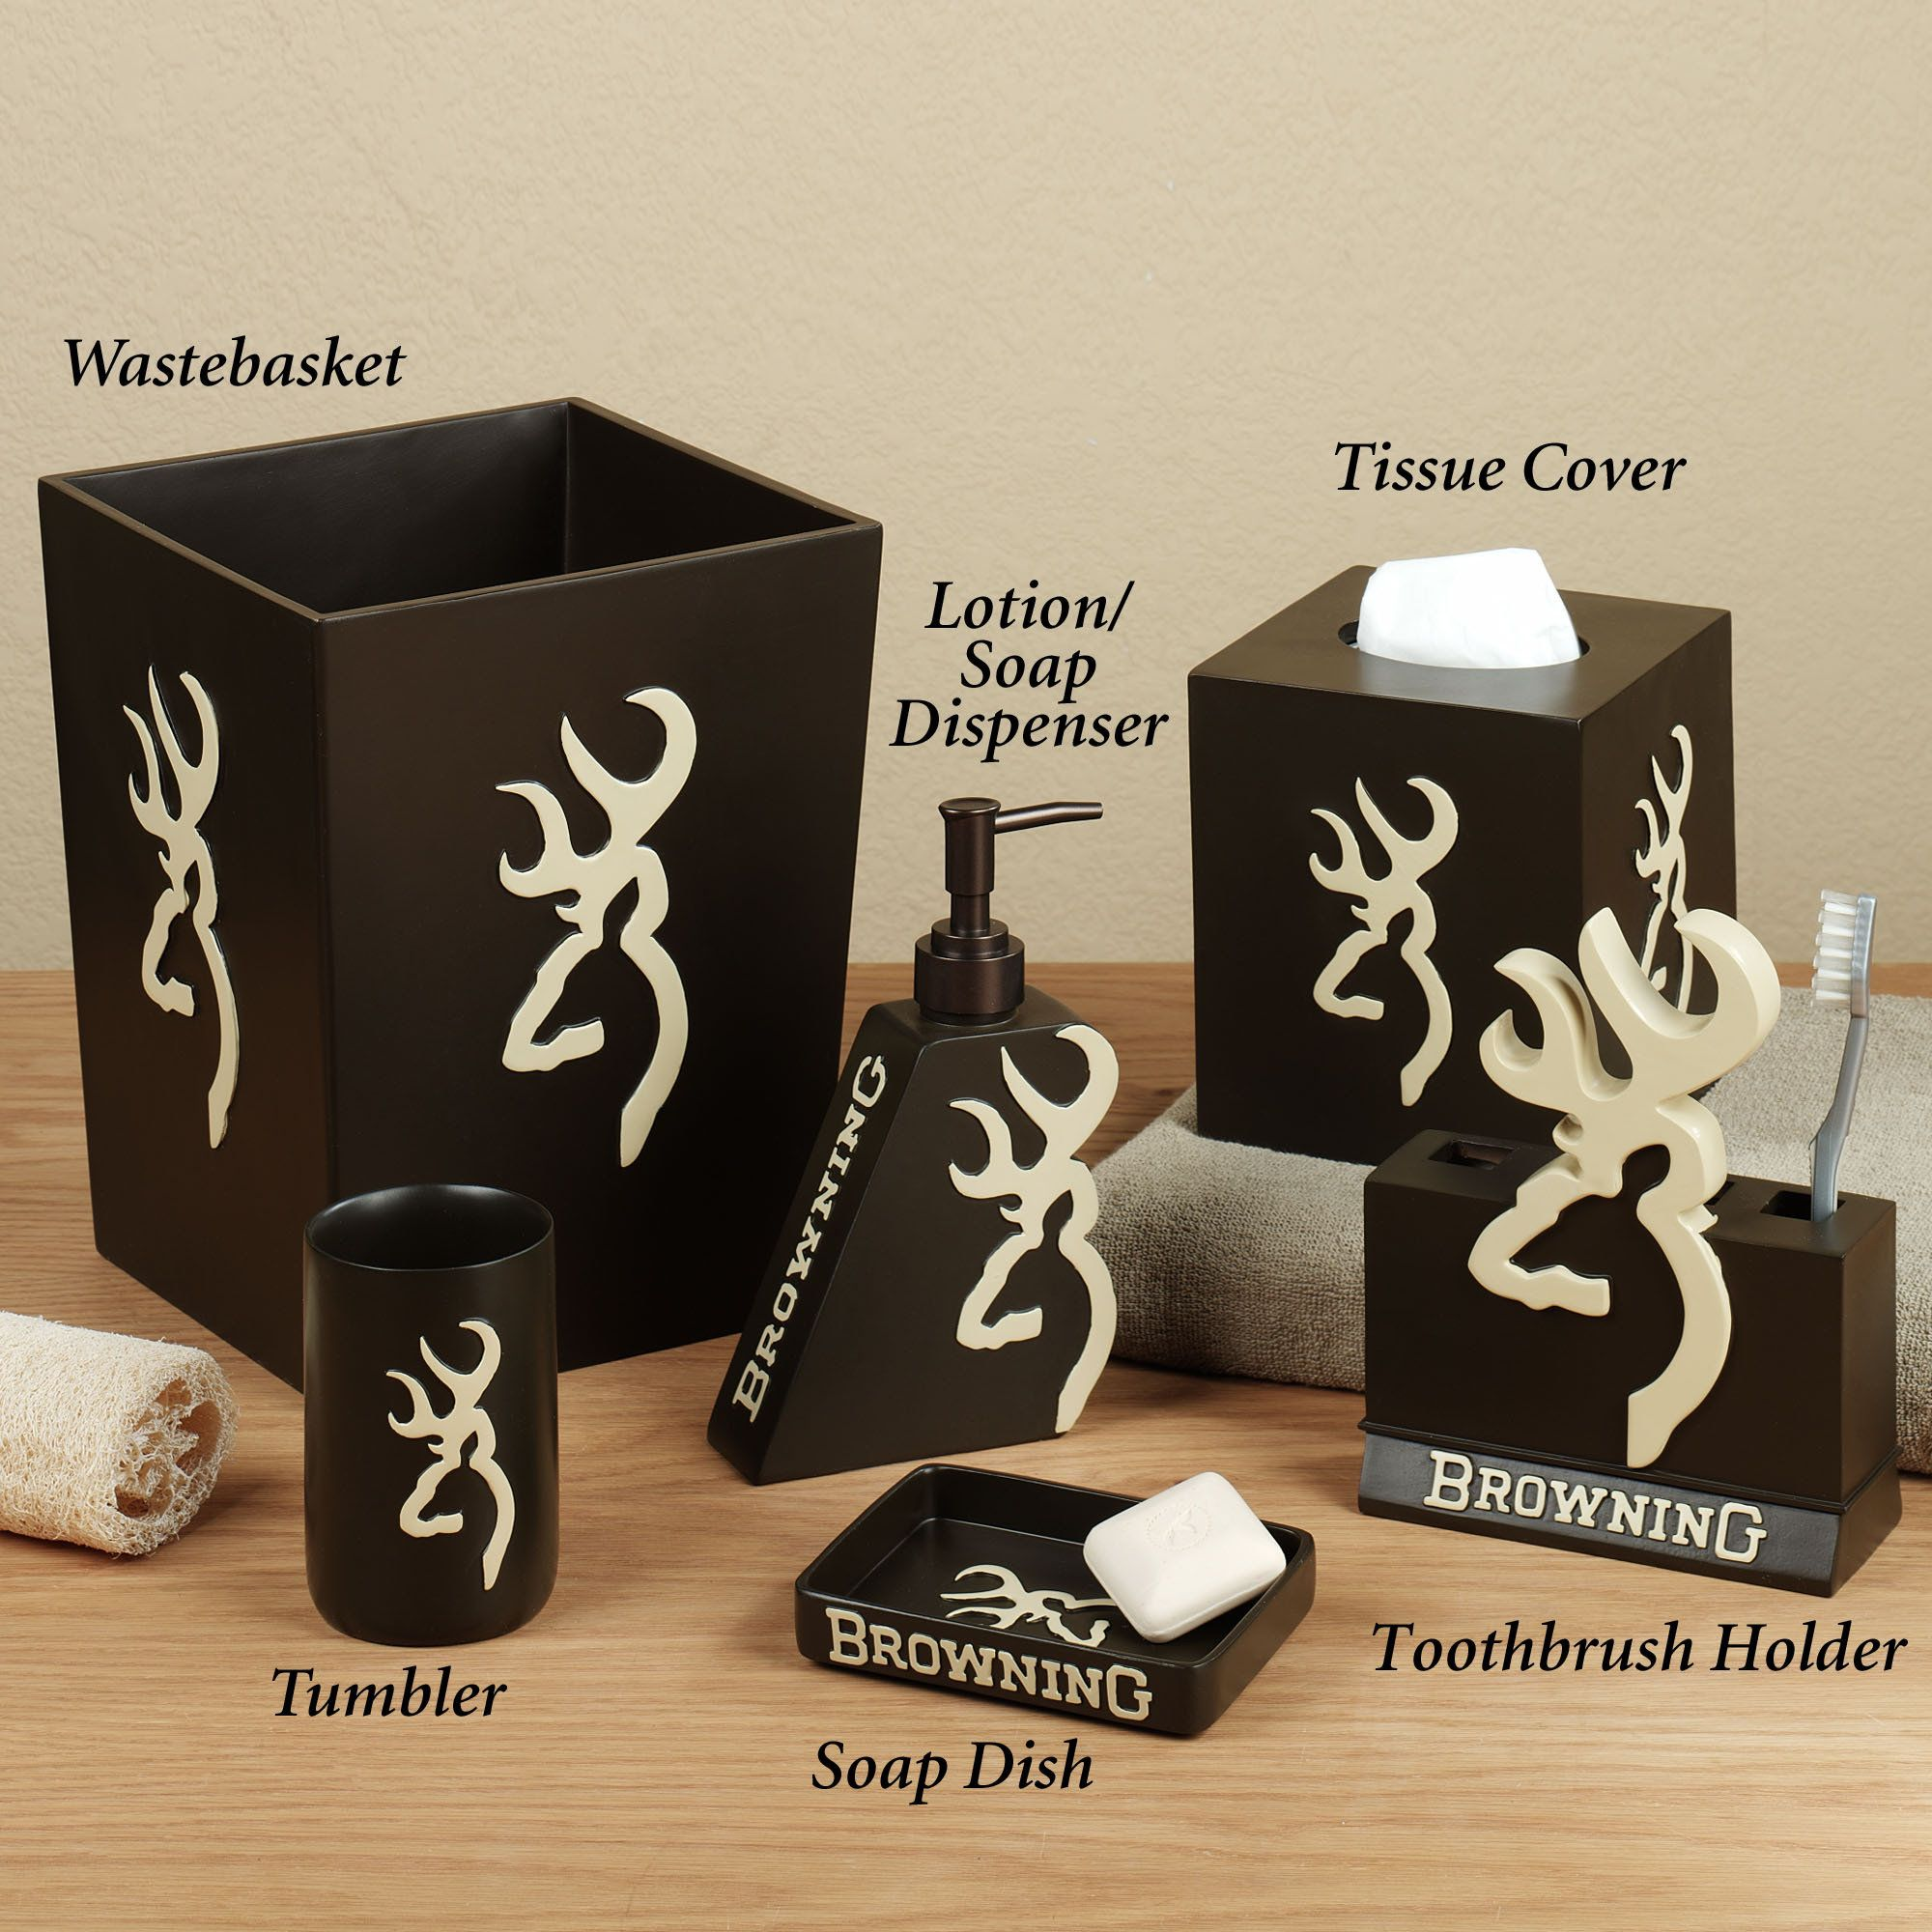 Deer Hunting Decor Deer Bath Accessories Complete With The Famous Deer Logo Will Liven Up New Home Designs Deer Hunting Decor